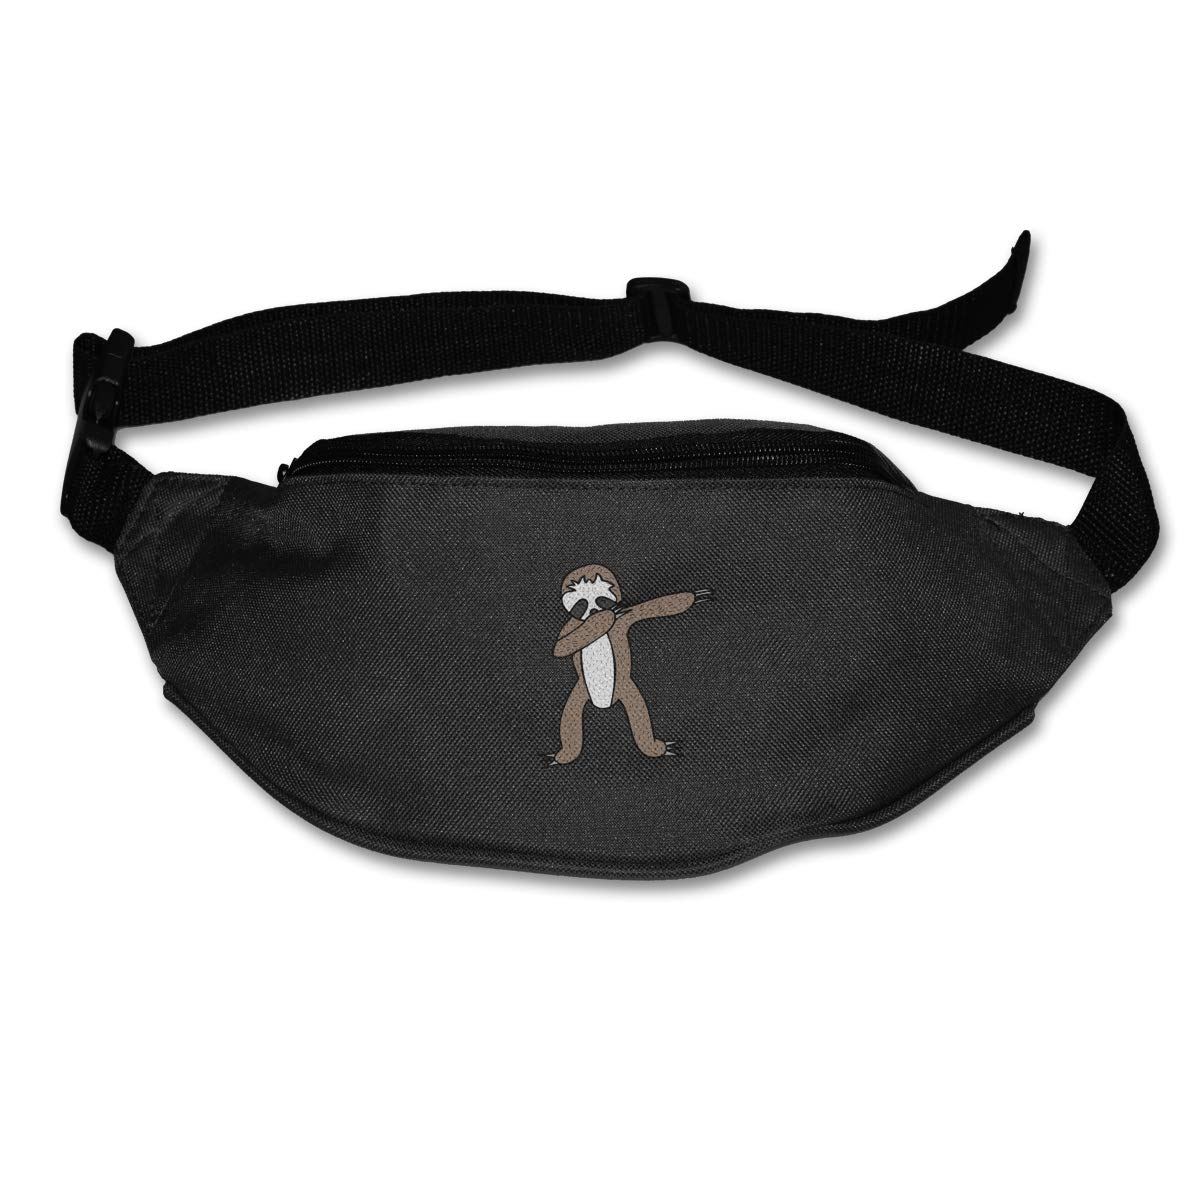 Sloth Dabbing Sport Waist Pack Fanny Pack Adjustable For Run